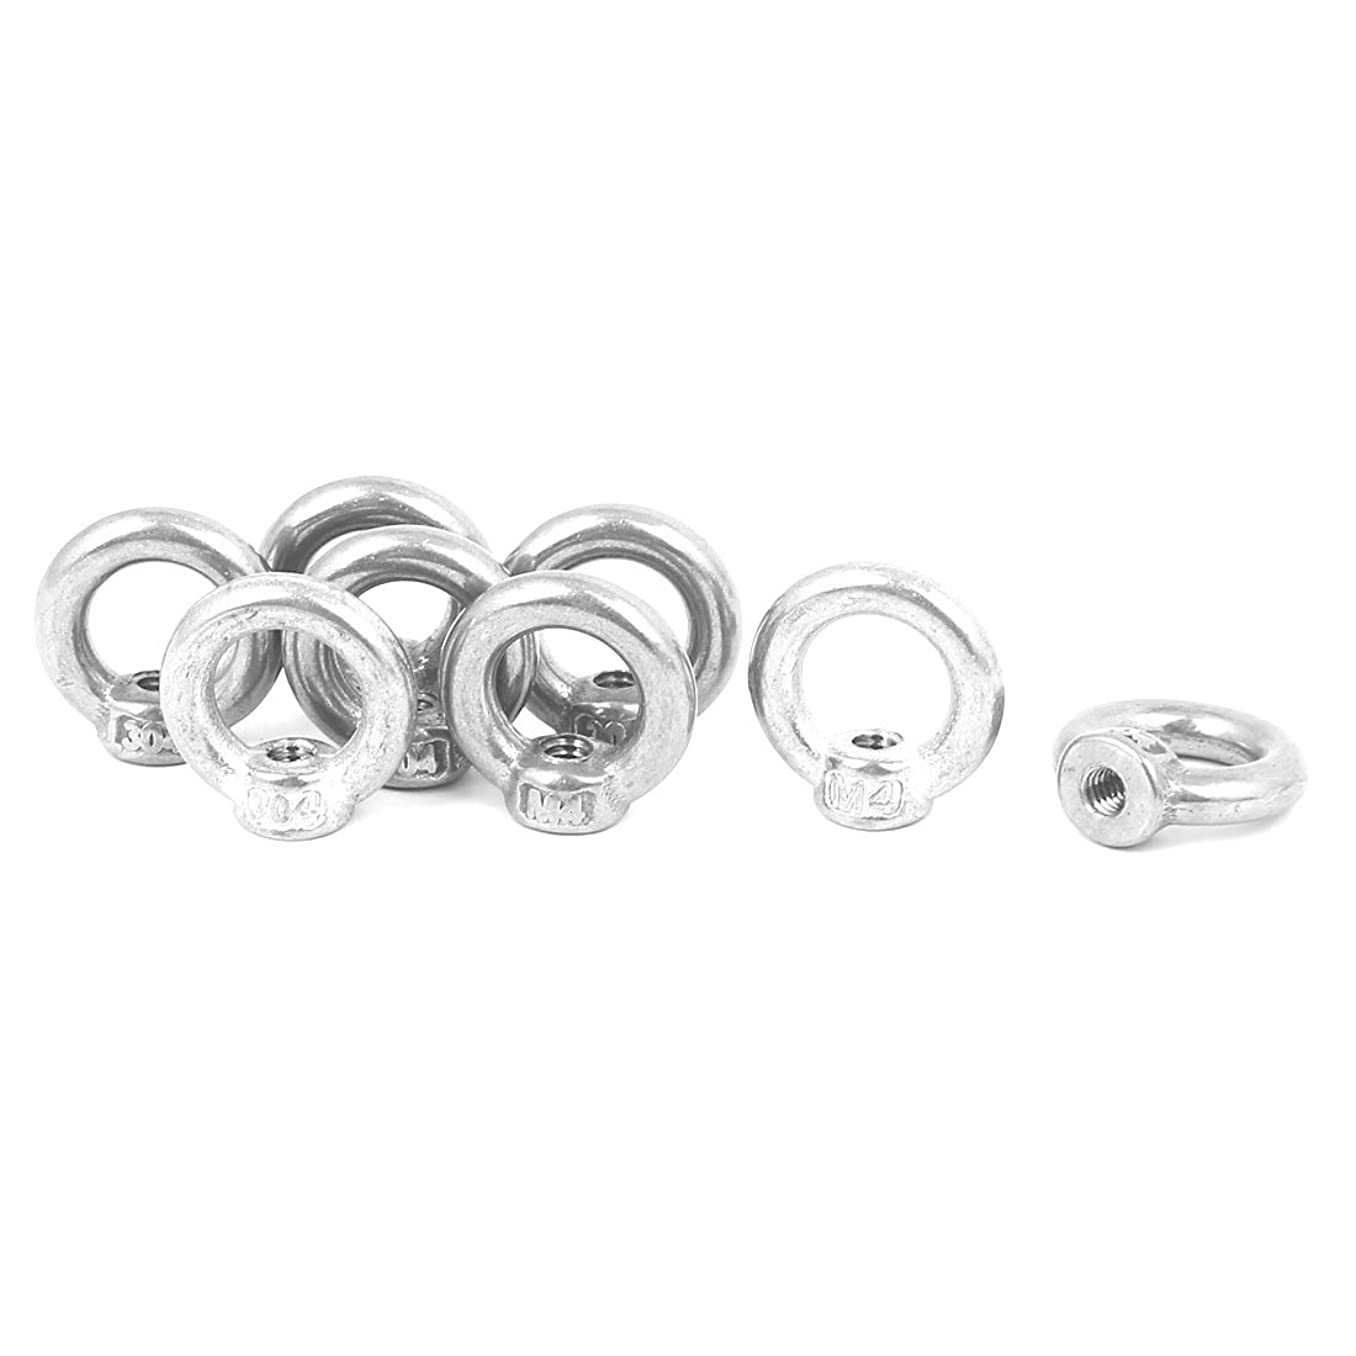 uxcell M4 Thread Dia 304 Stainless Steel Ring Shape Eyed Bolt Lifting Eye Nut 8PCS